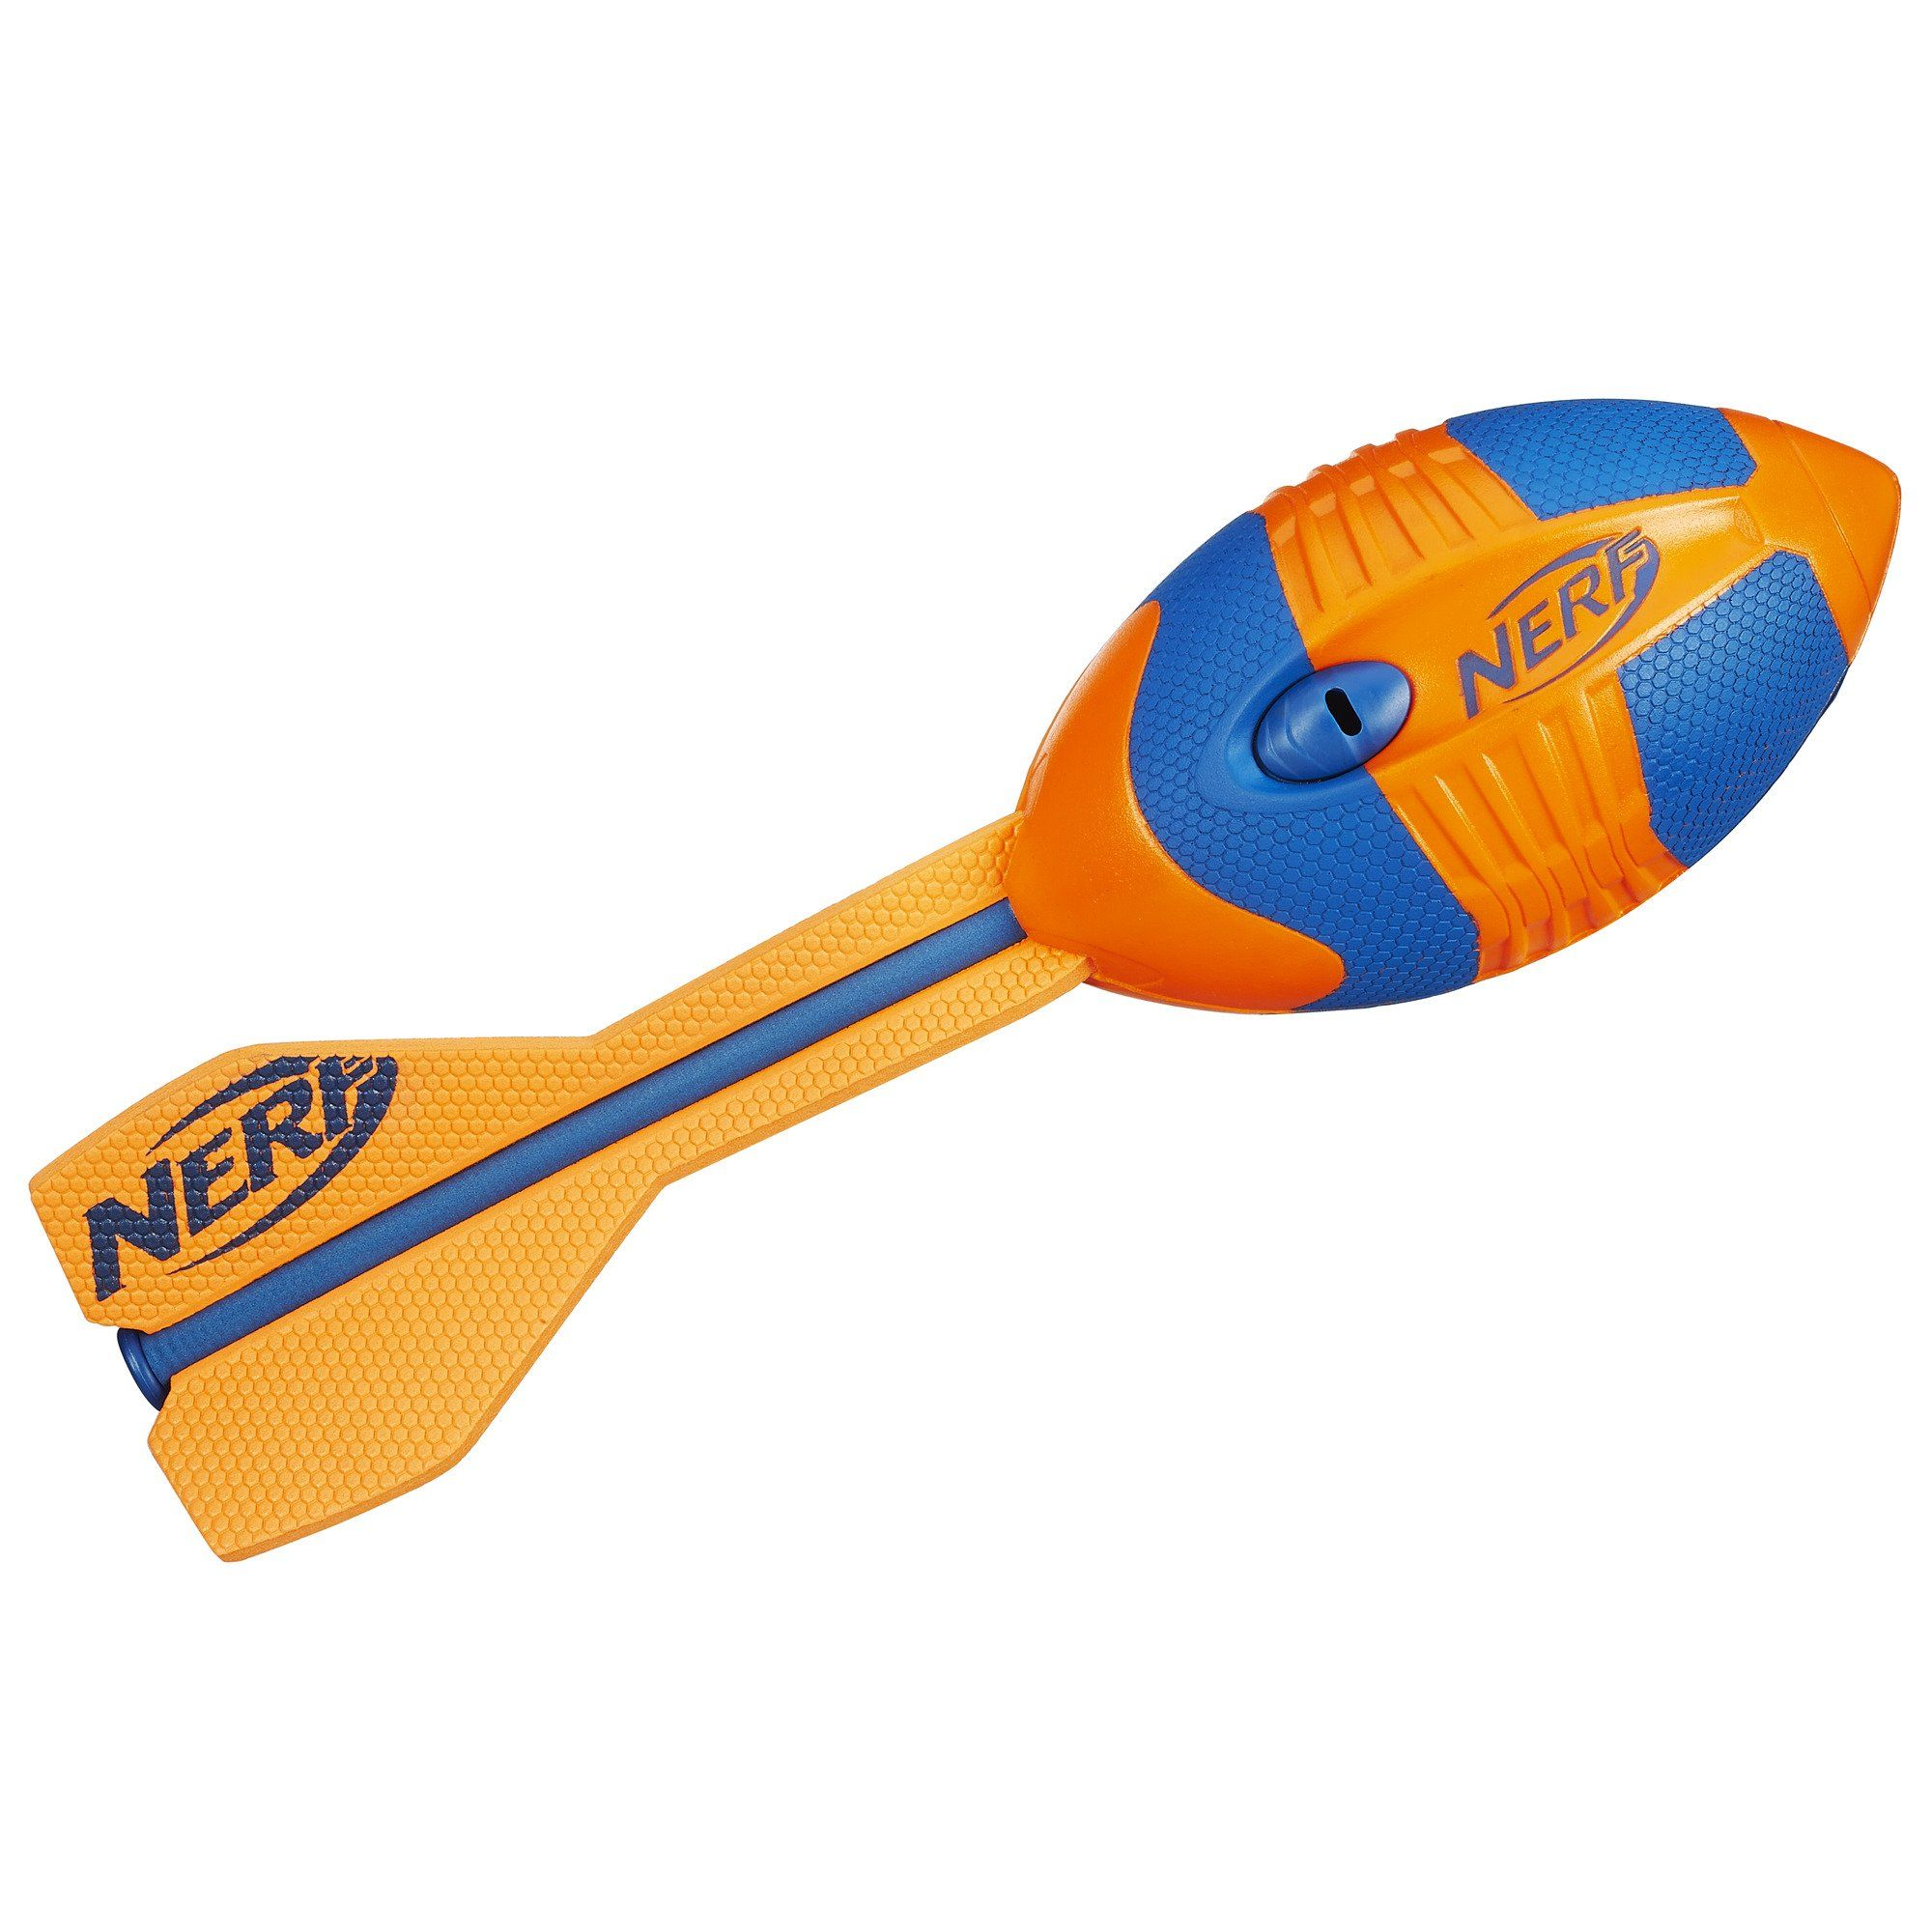 Nerf Sports Vortex Aero Howler Toy Orange Go long with the Aero Howler football